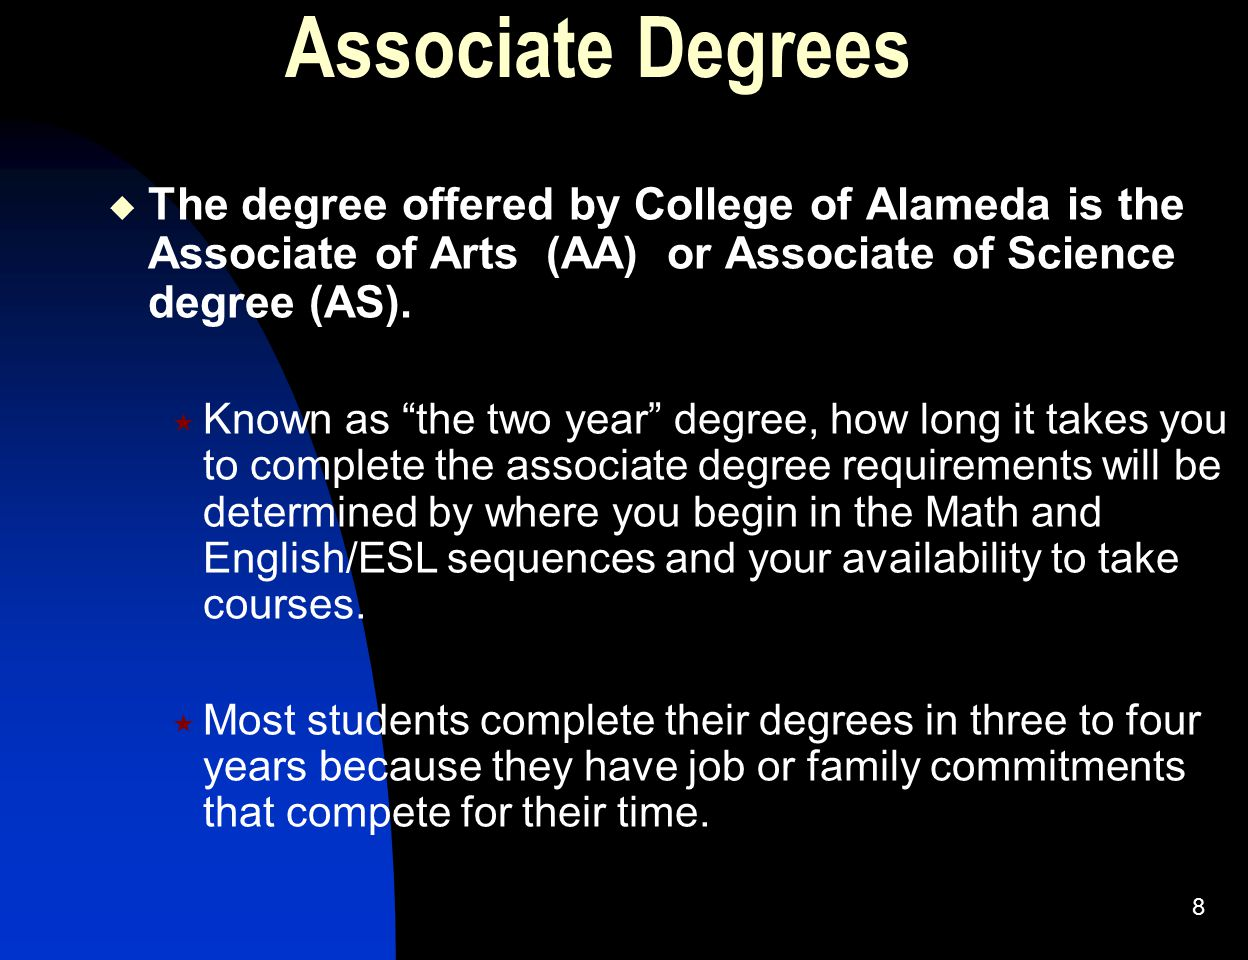 Associate Degrees The degree offered by College of Alameda is the Associate of Arts (AA) or Associate of Science degree (AS).